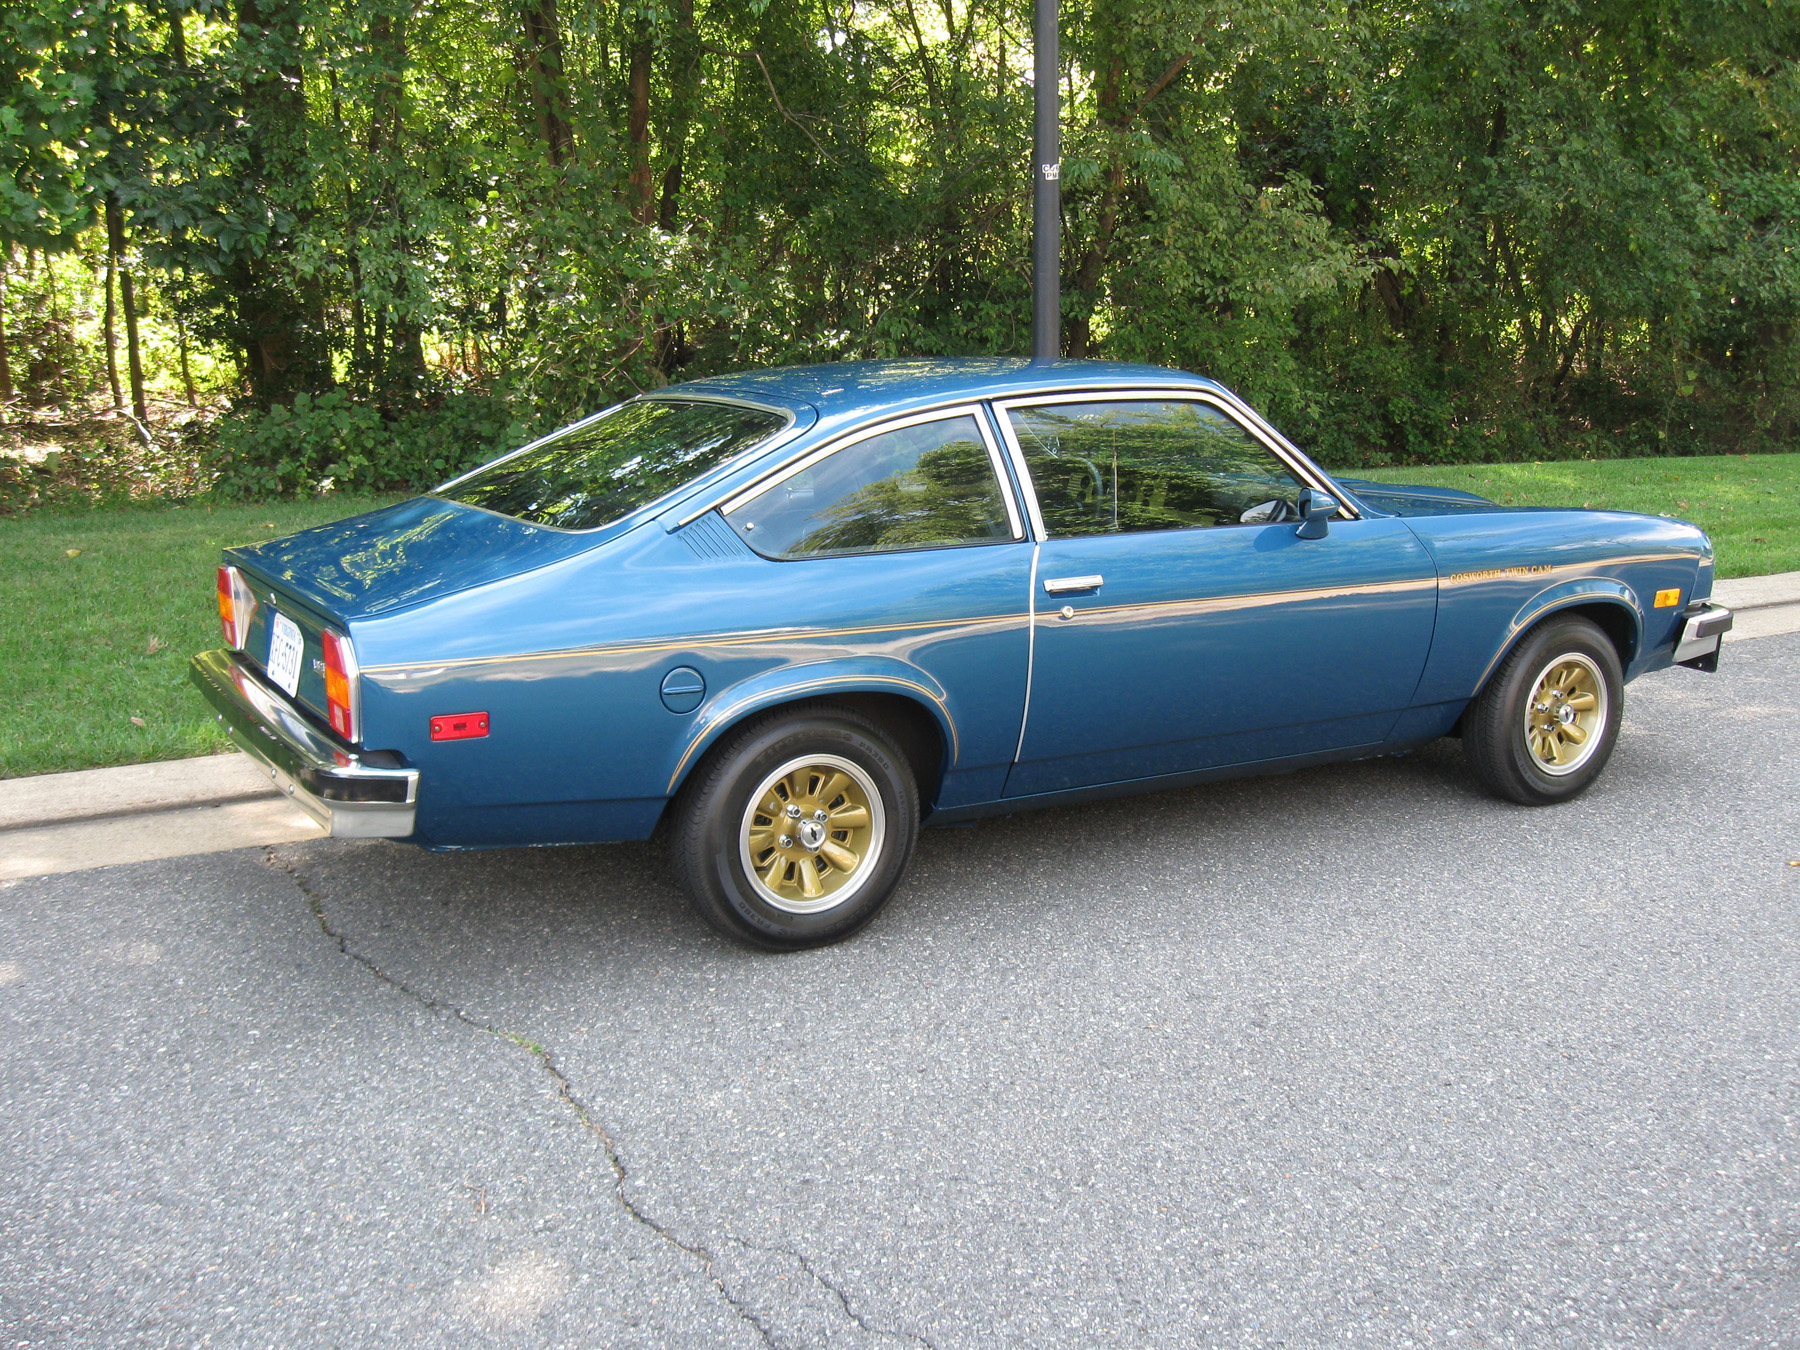 1976 Chevy Cosworth Vega is Rare and Well Restored - Classic ...